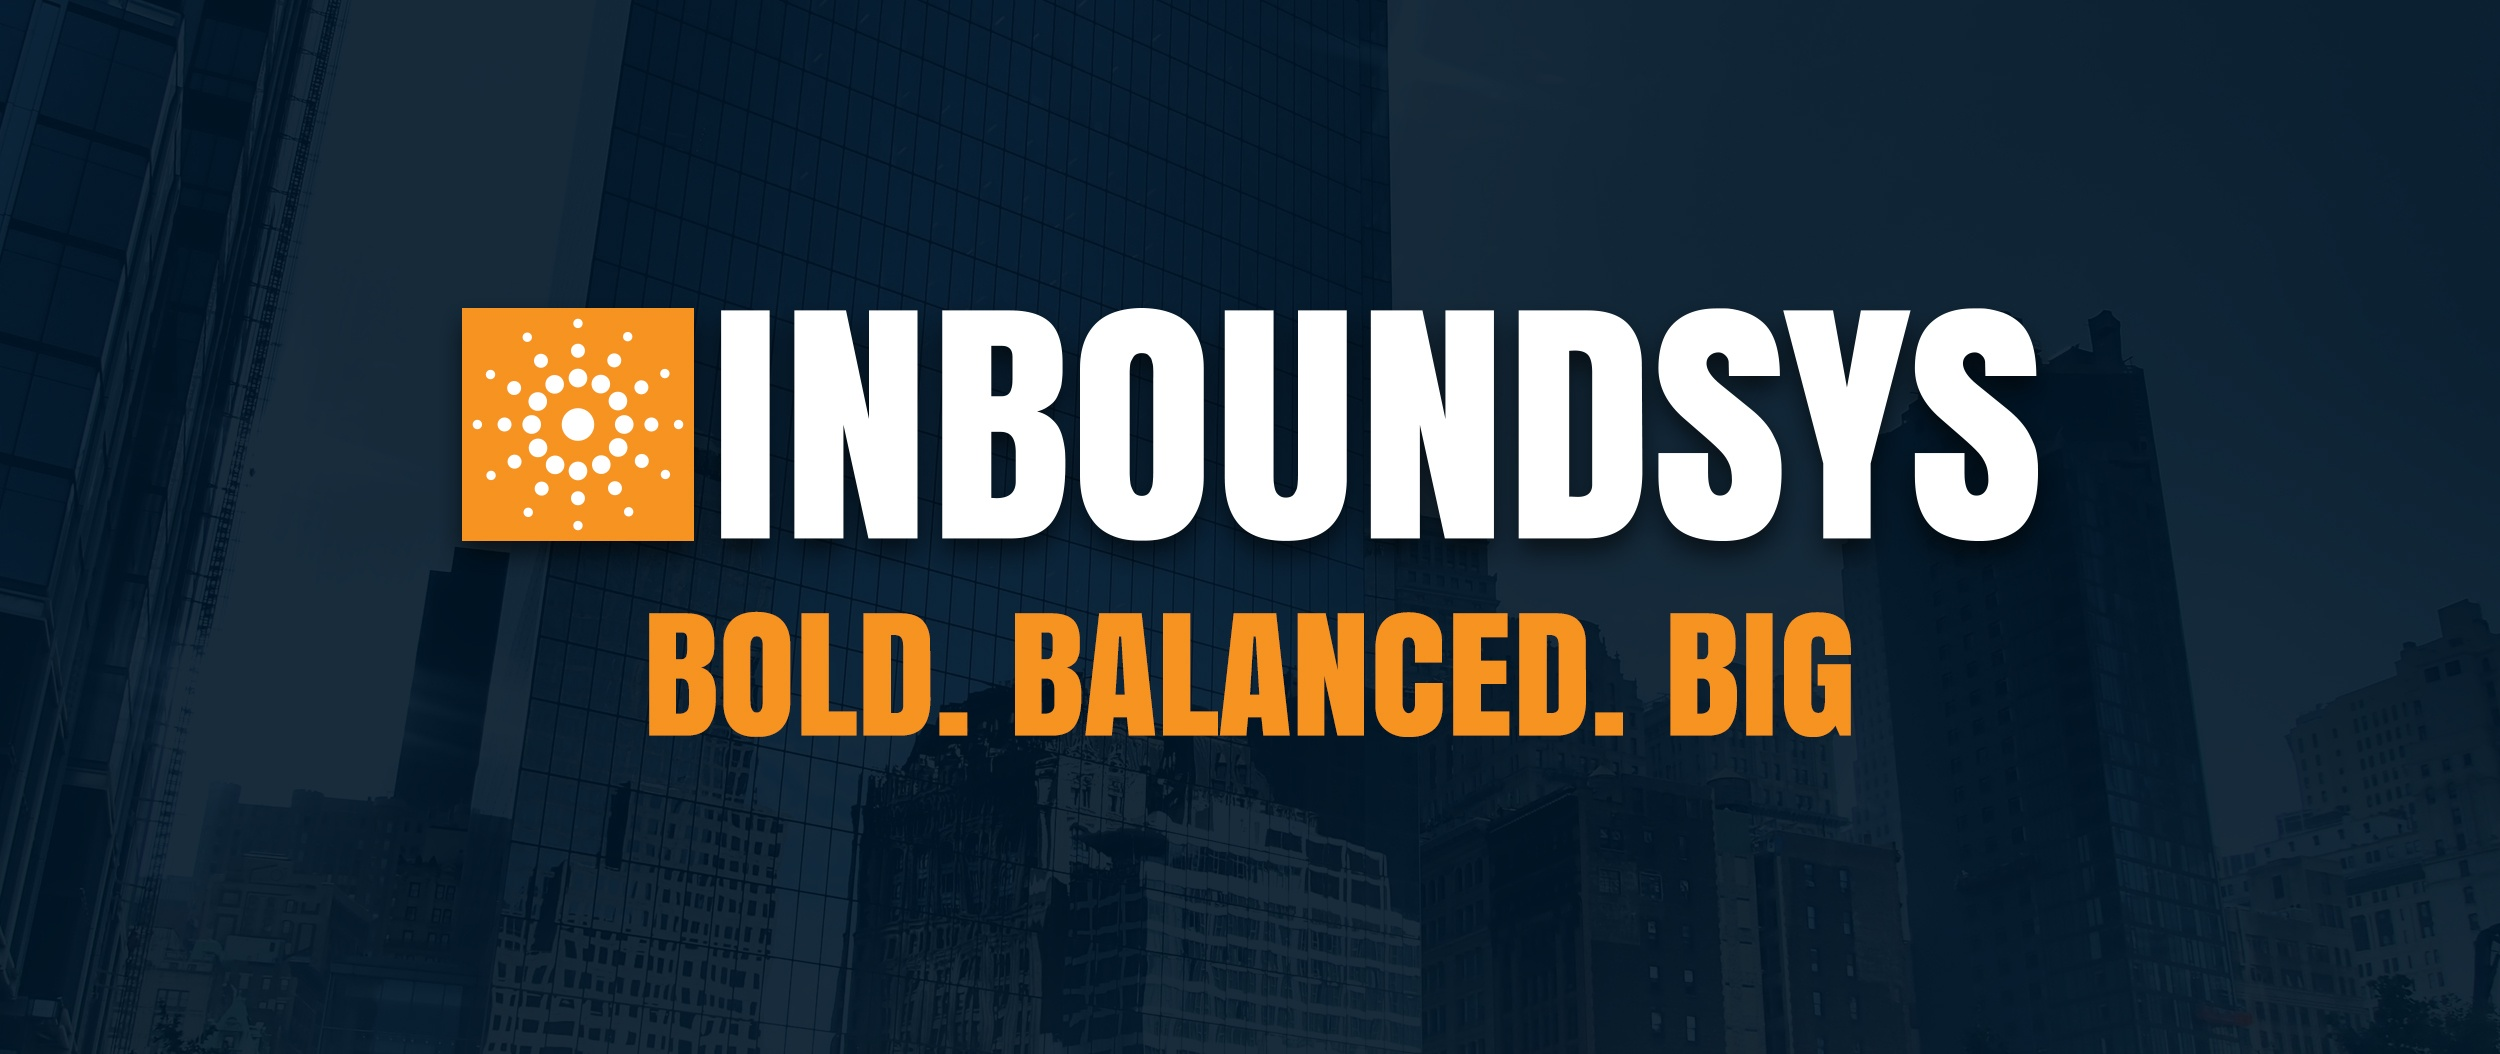 Inboundsys is bold, balanced and big!